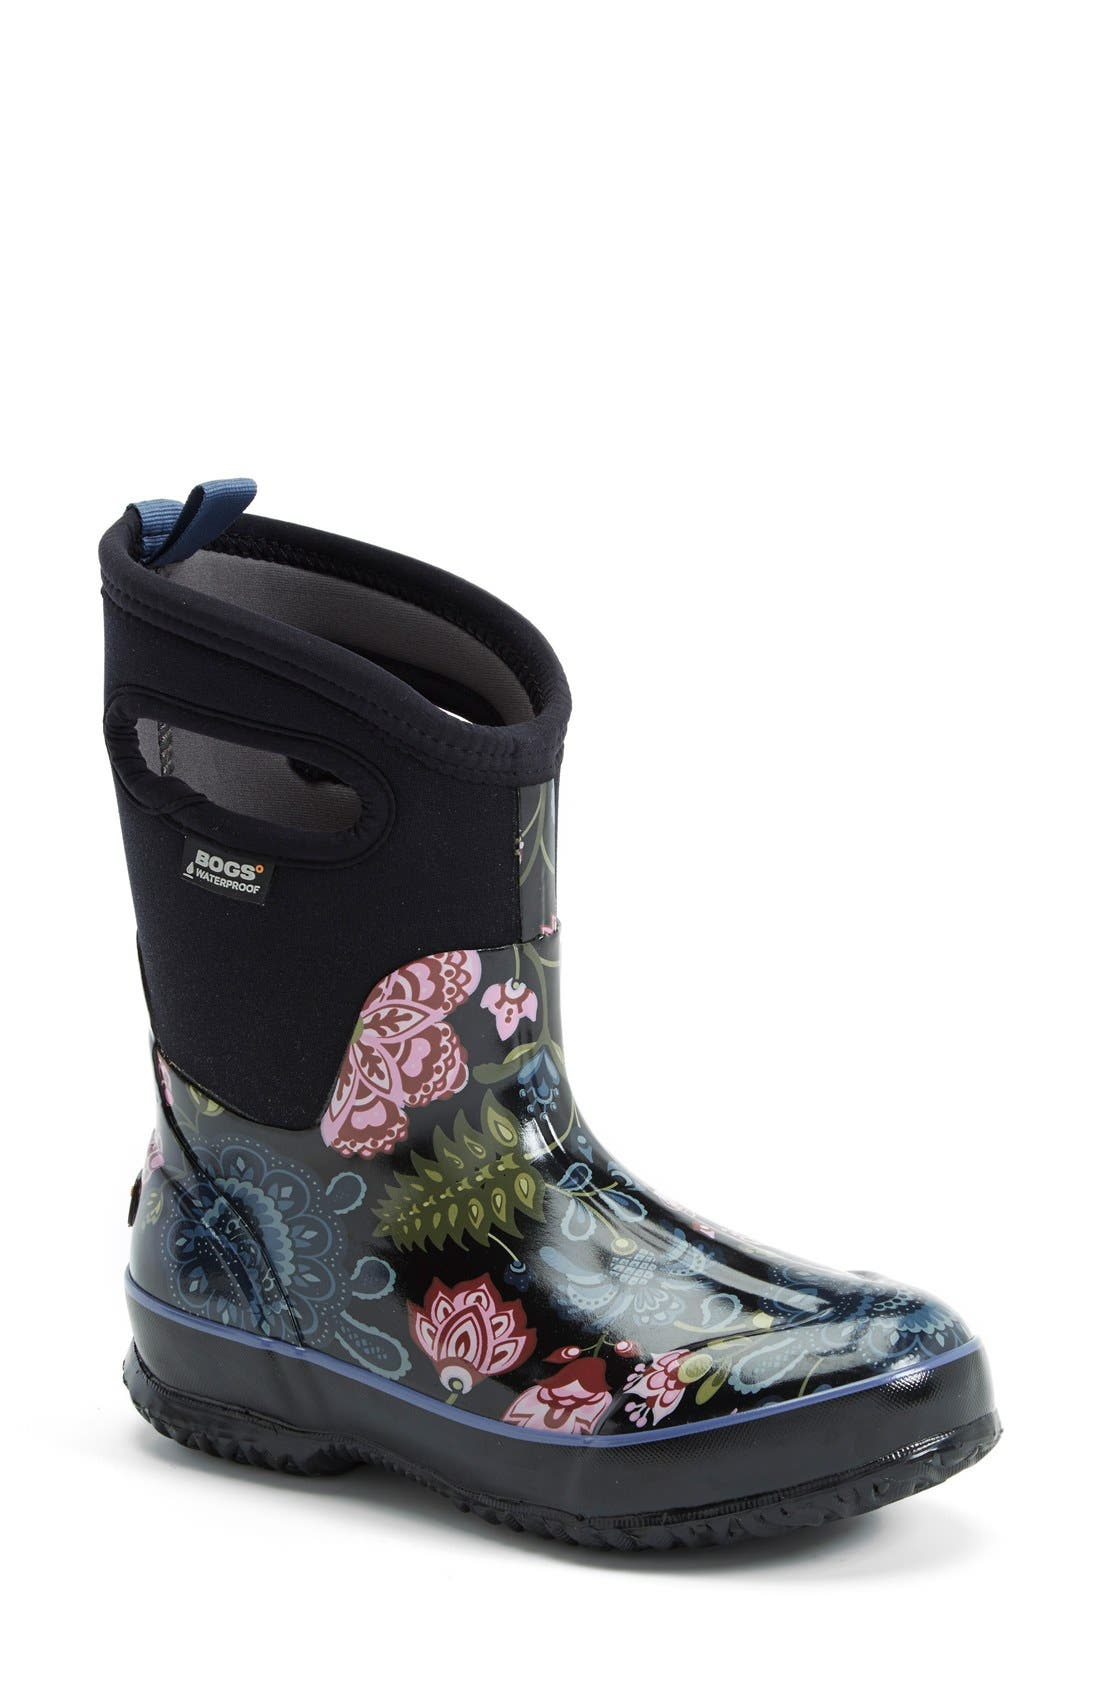 BOGS 'Classic Winter Blooms' Mid High Waterproof Snow